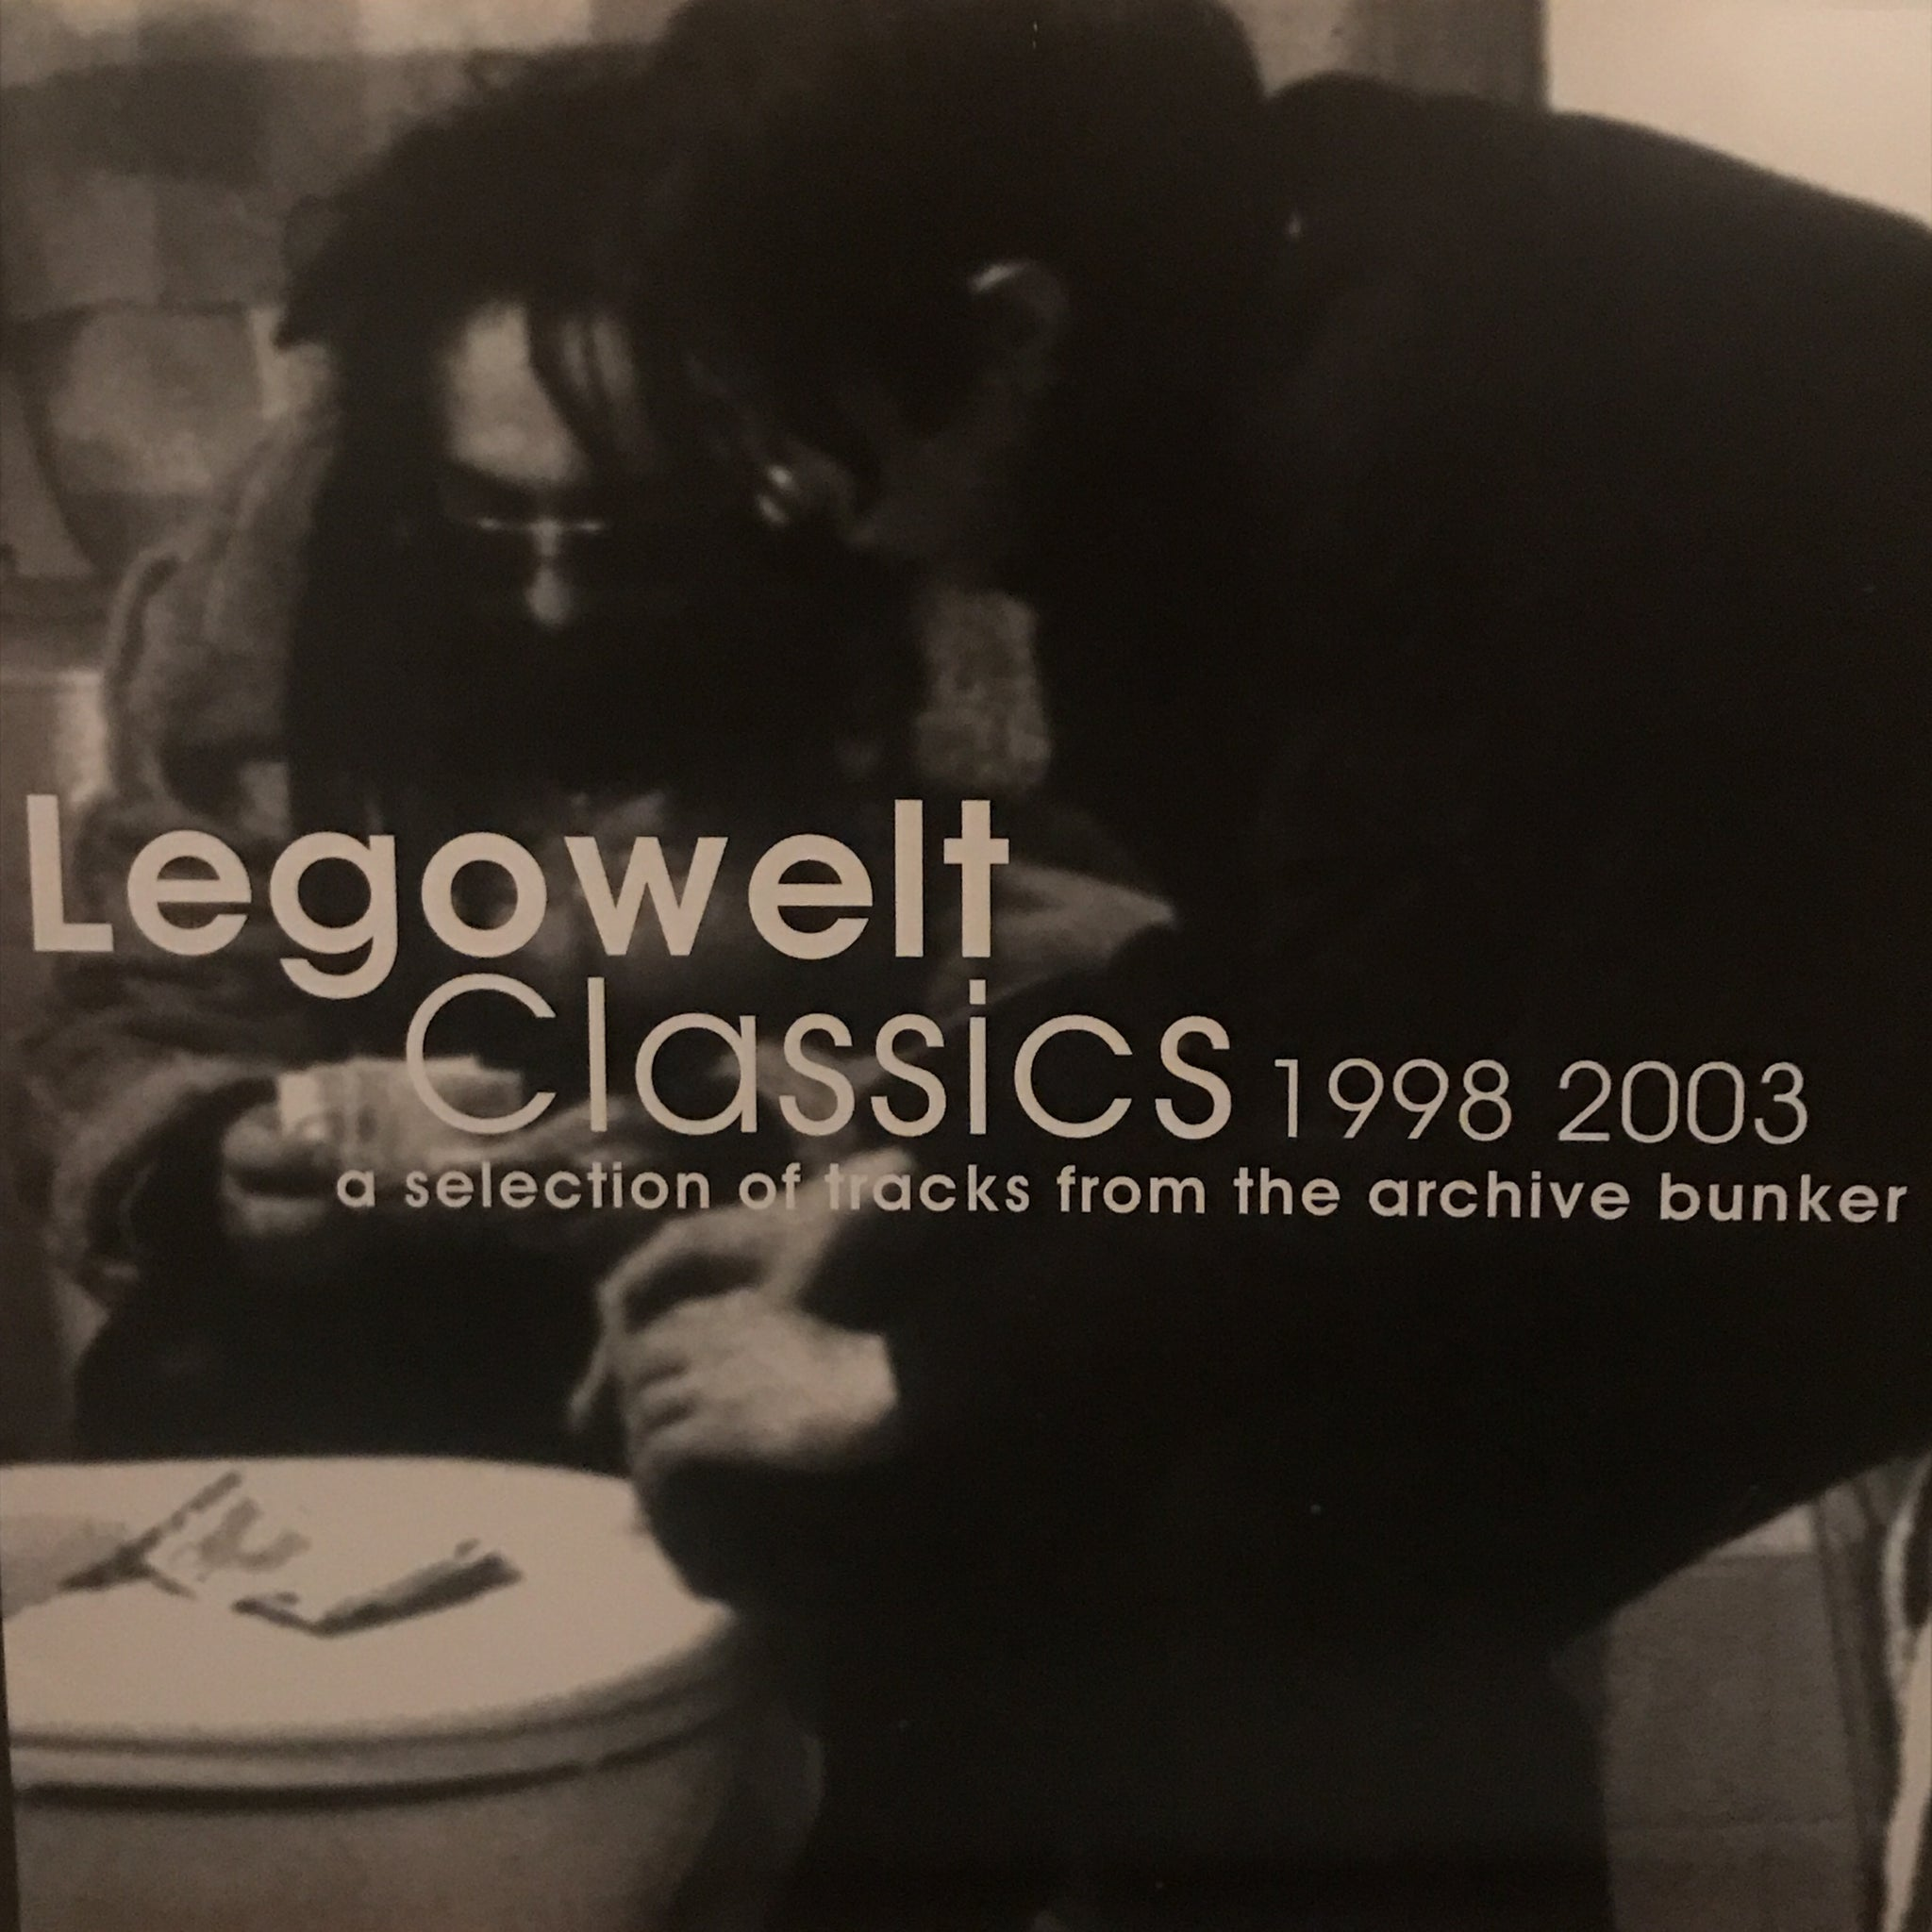 Legowelt ‎– Classics 1998 2003 (A Selection Of Tracks From The Archive Bunker)